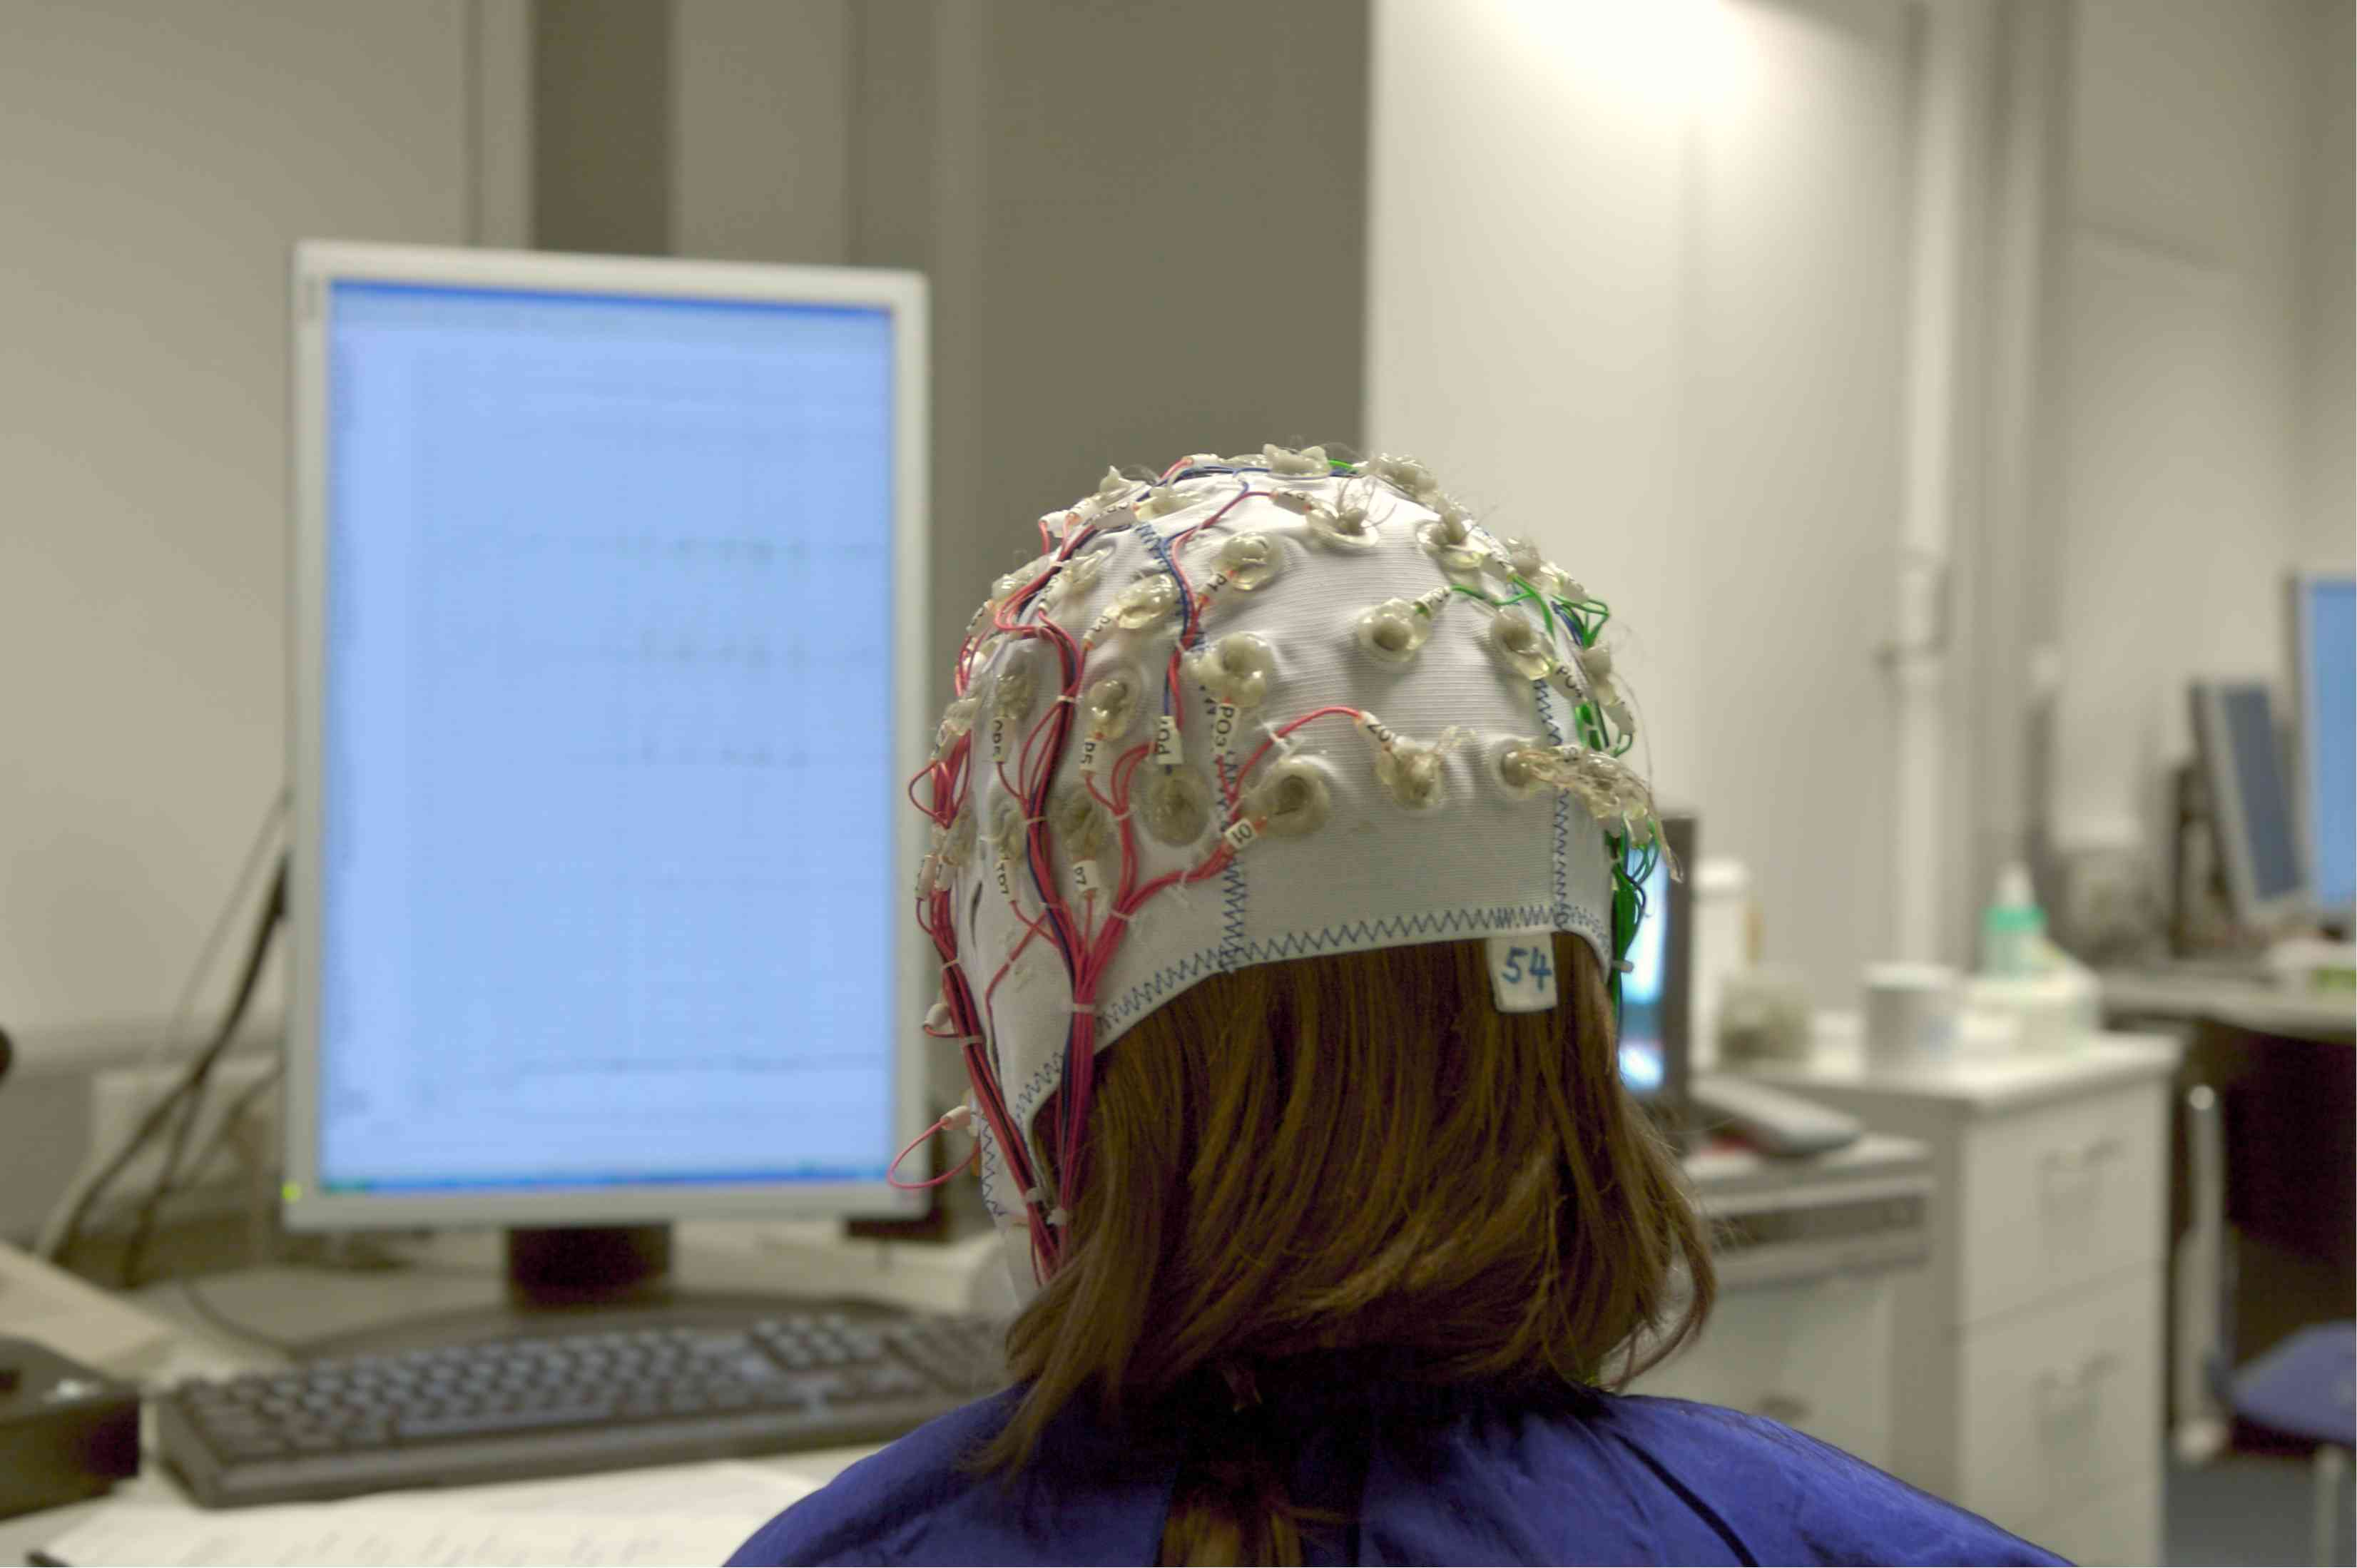 The view from behind of someone connected to an EEG machine sitting in front a computer screen.